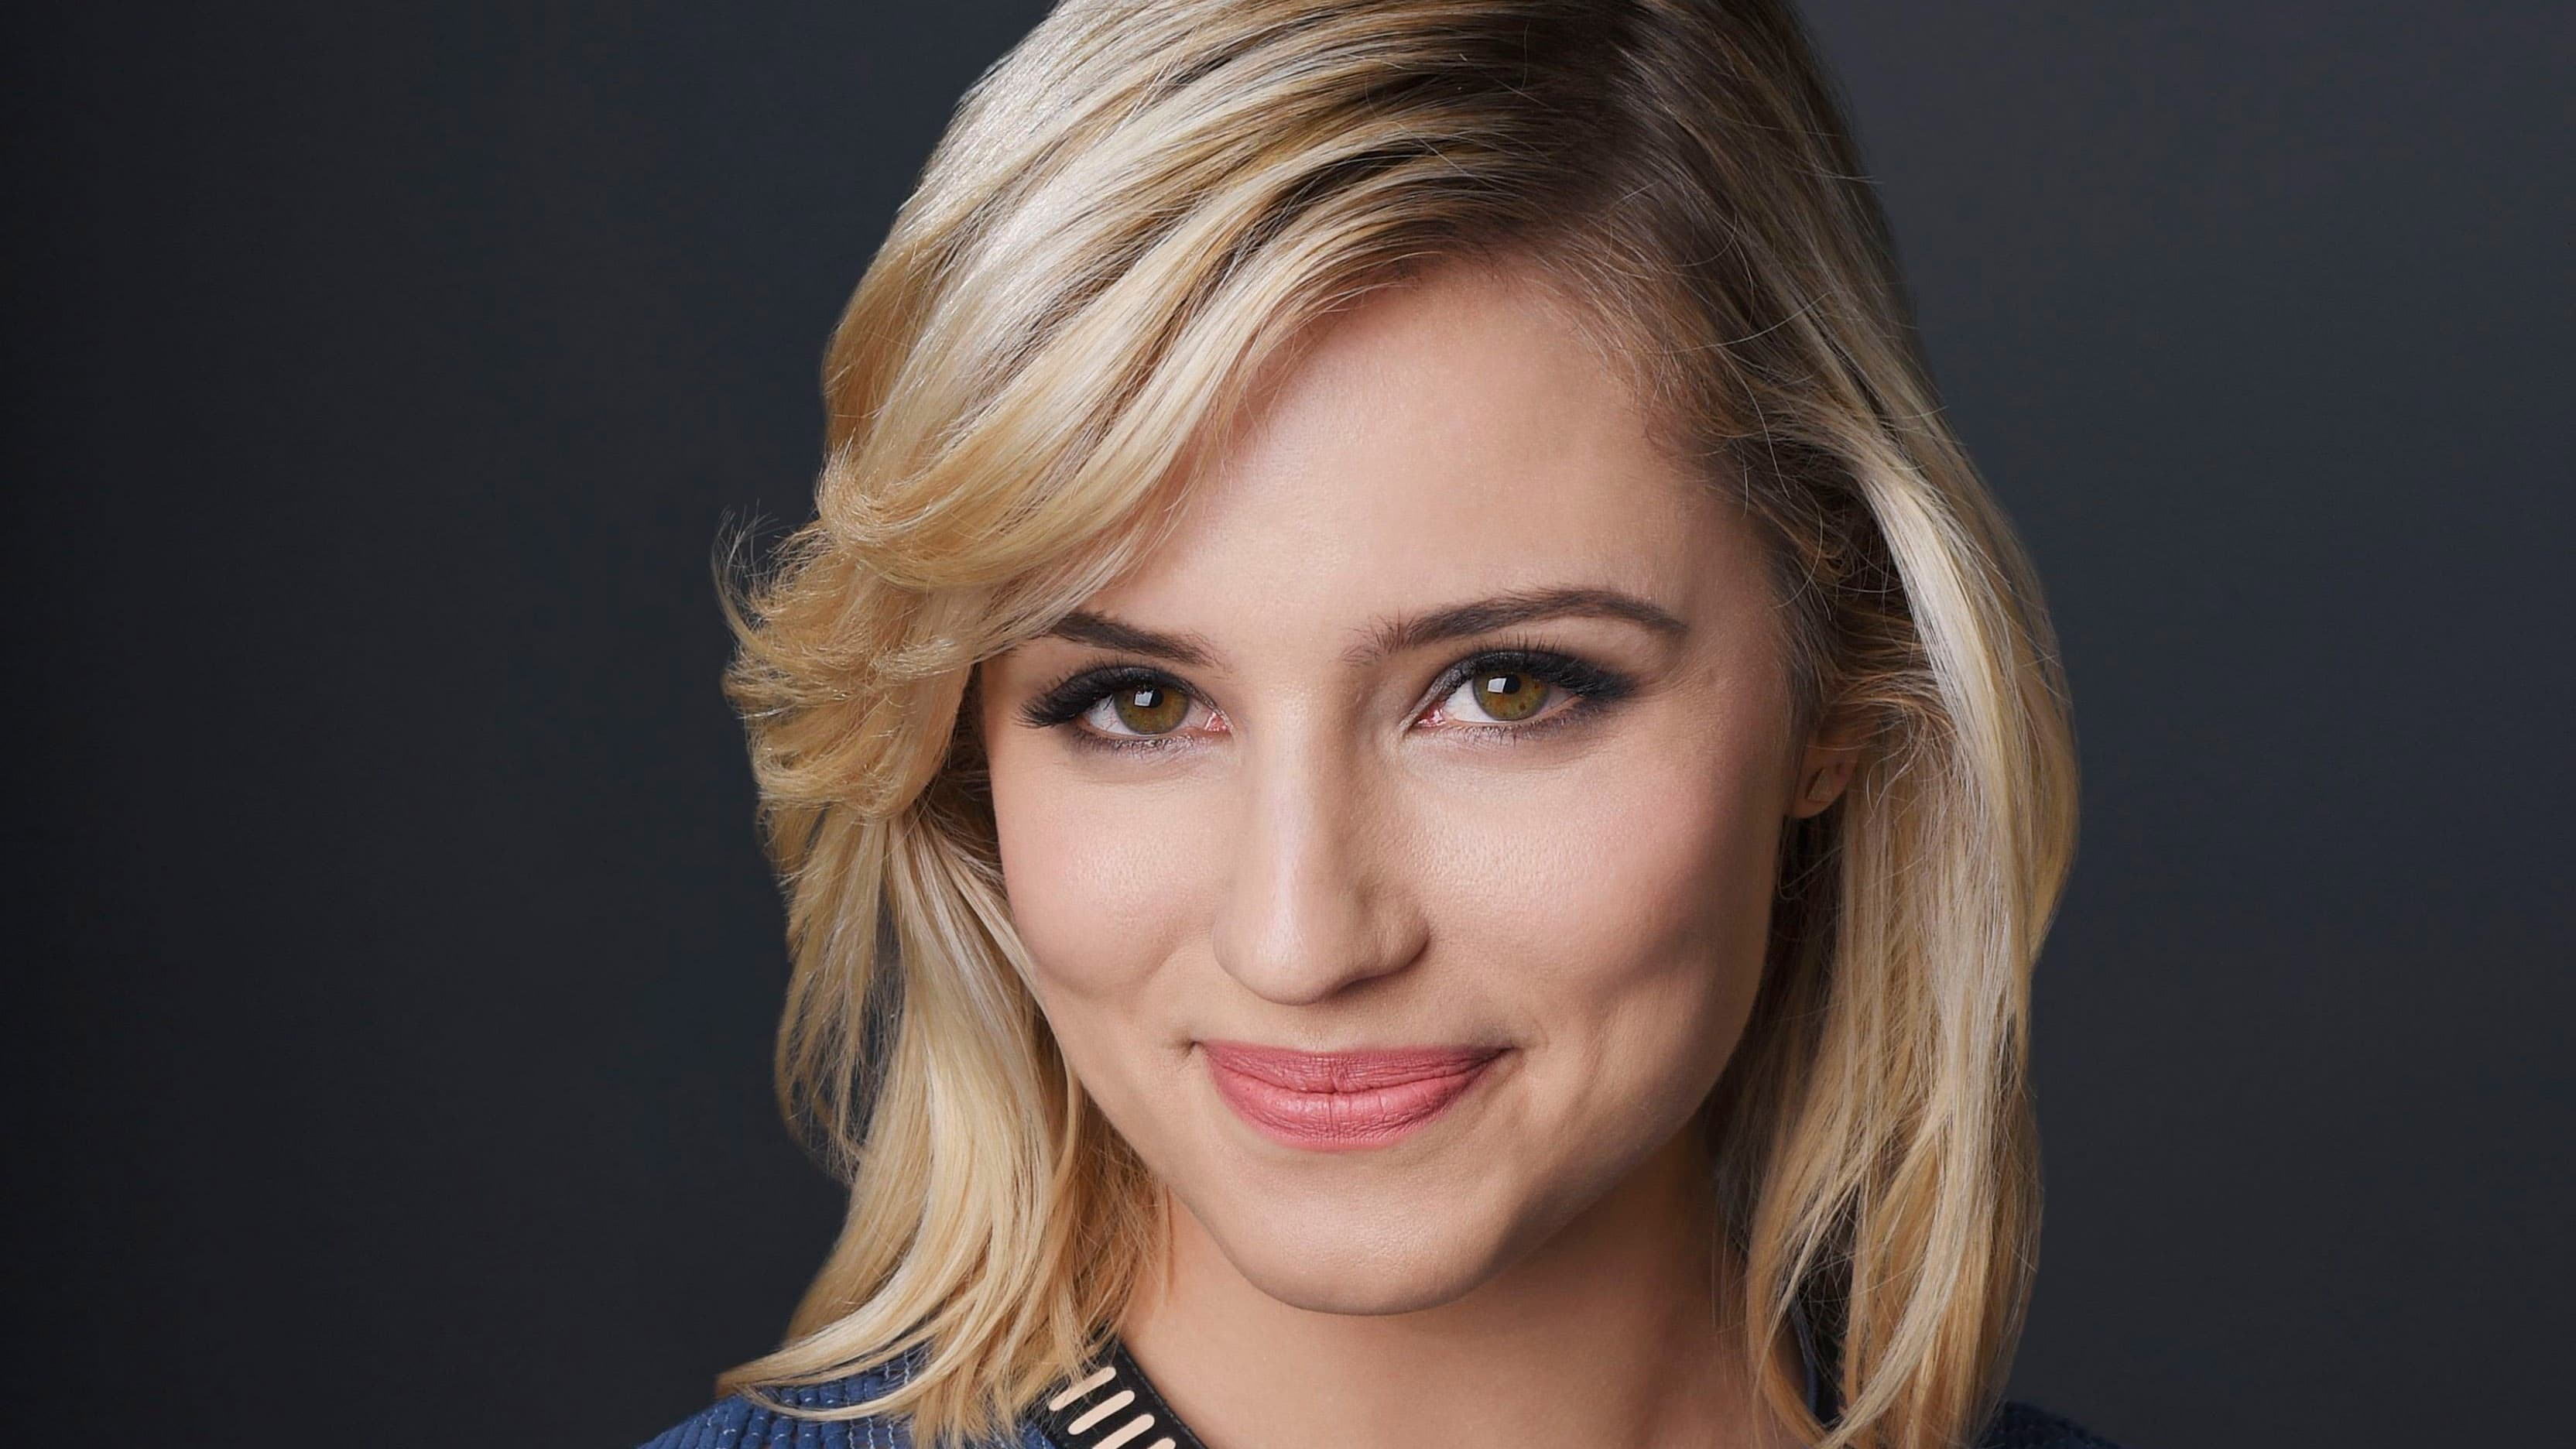 Dianna Agron Wallpapers Hd High Quality Photos Hairstyle